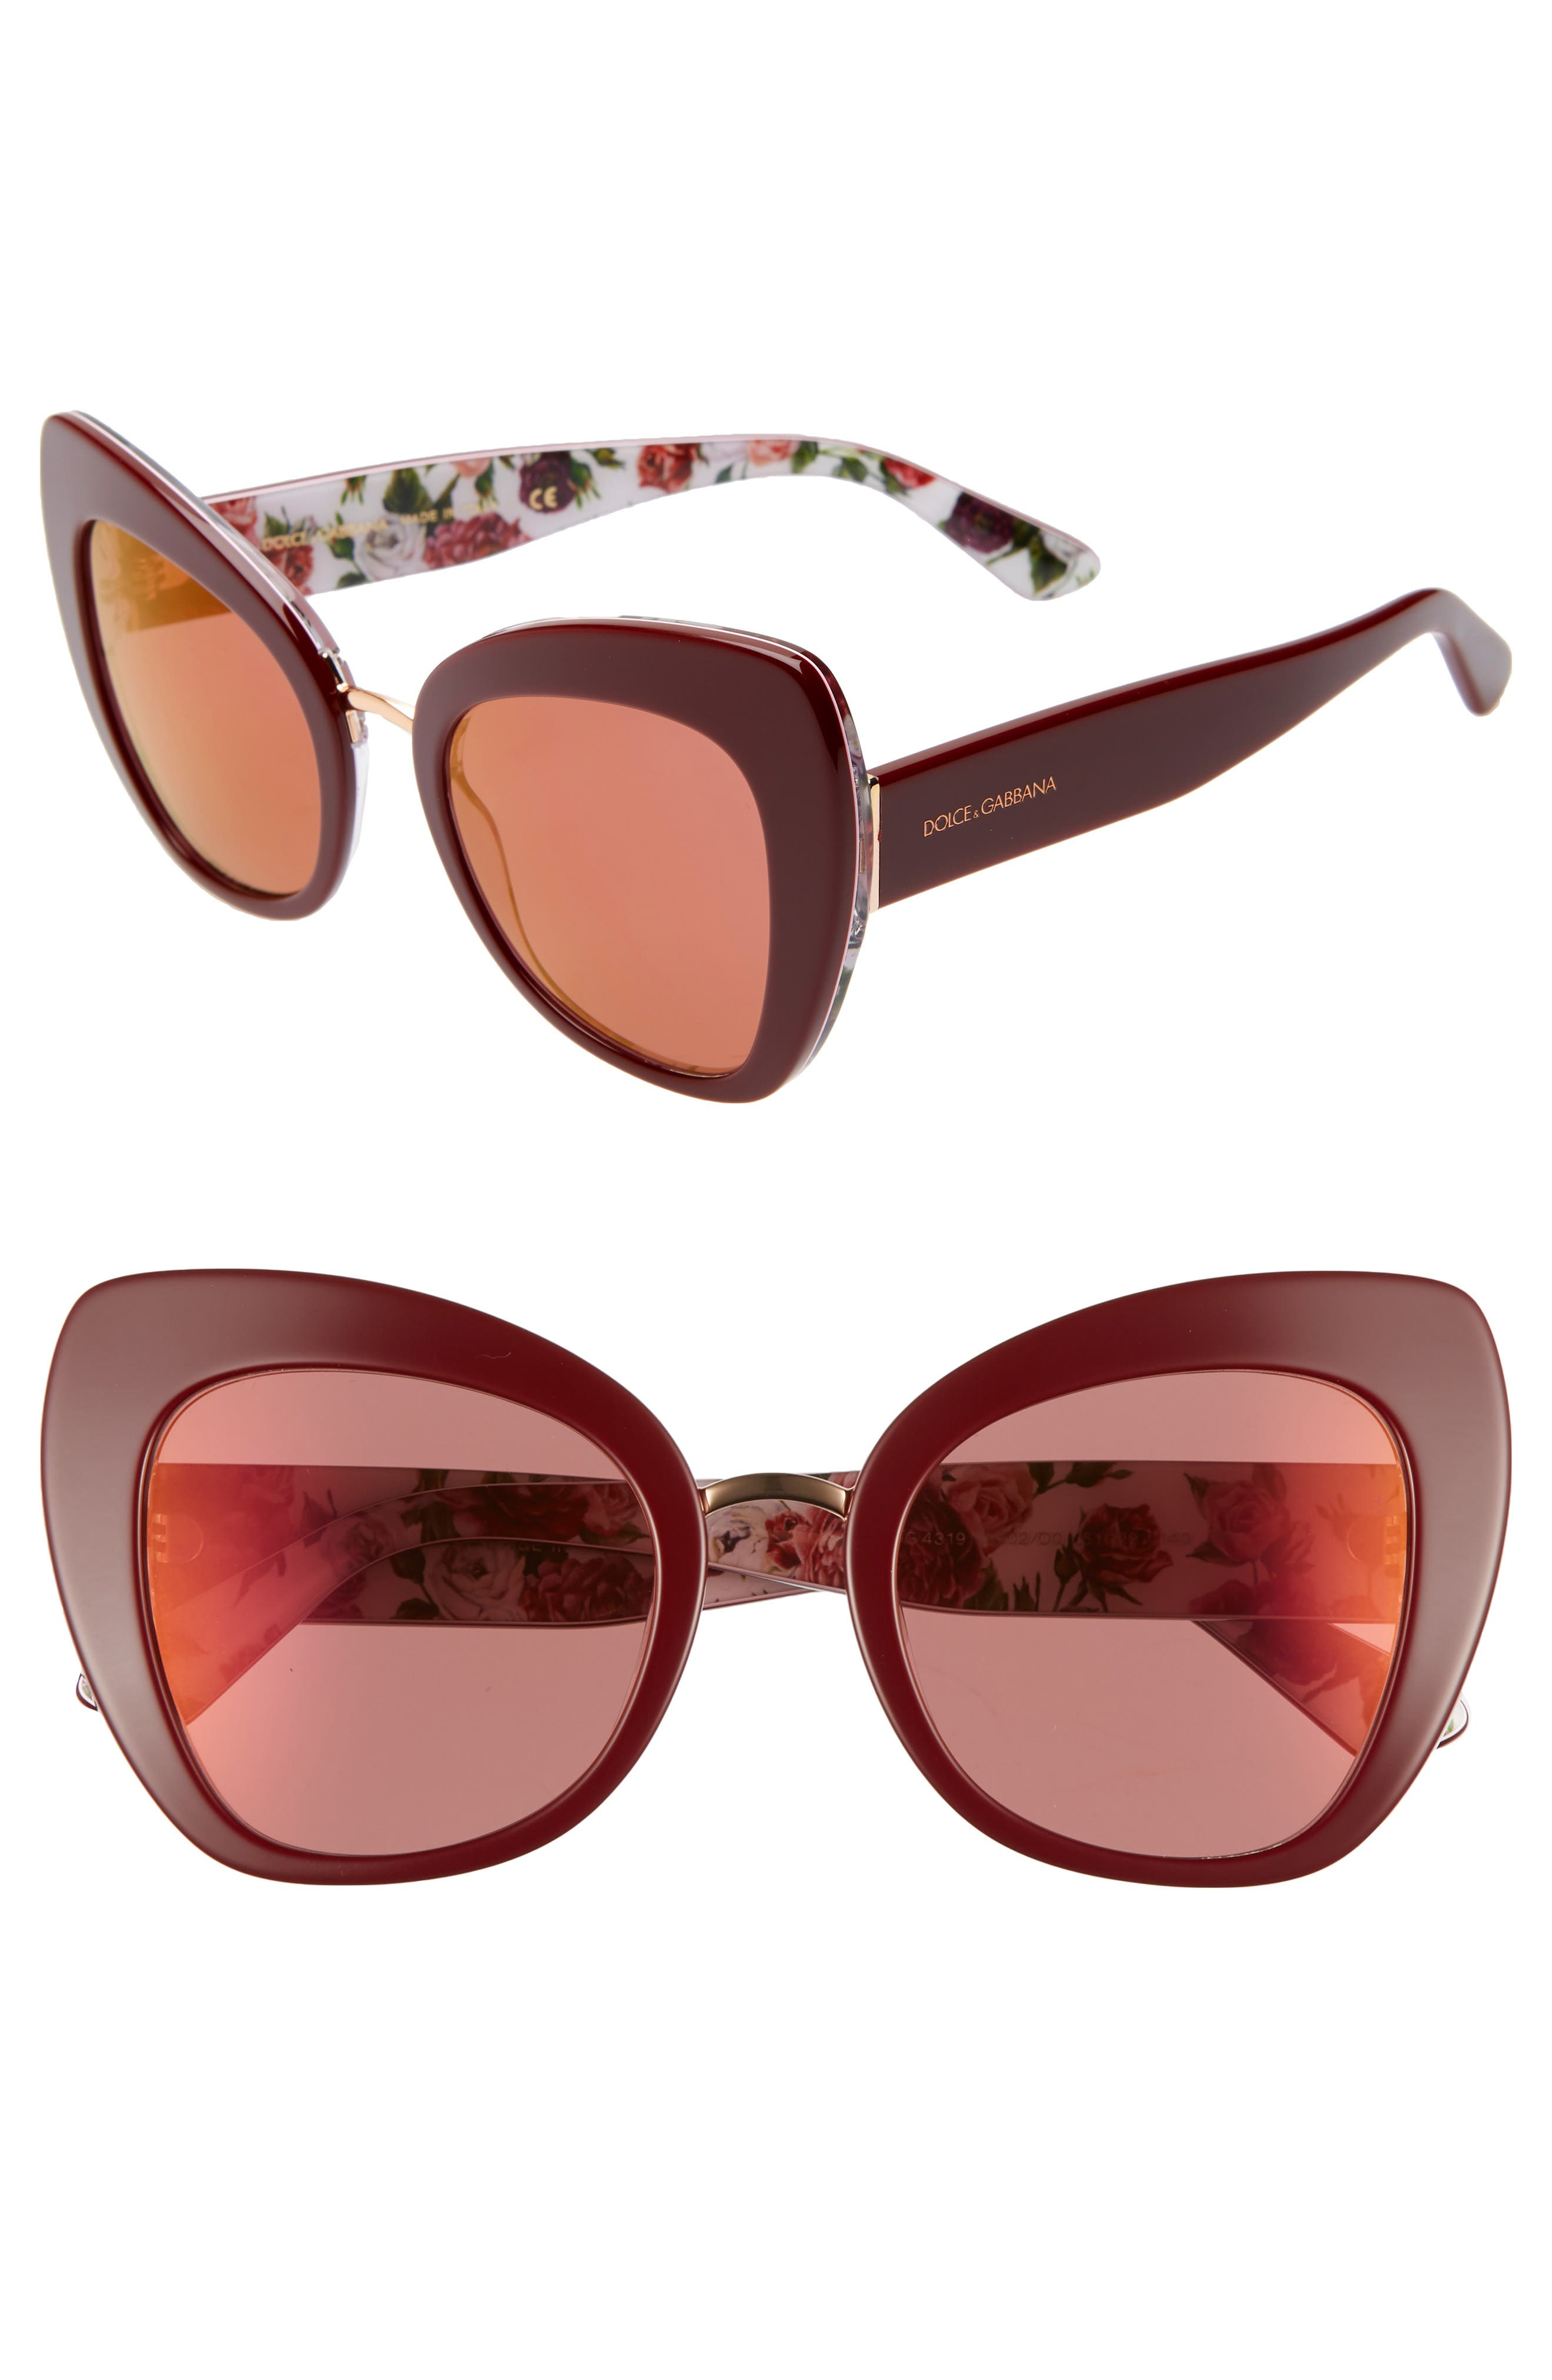 51mm Mirrored Cat Eye Sunglasses,                             Main thumbnail 1, color,                             PURPLE/ RED MIRROR